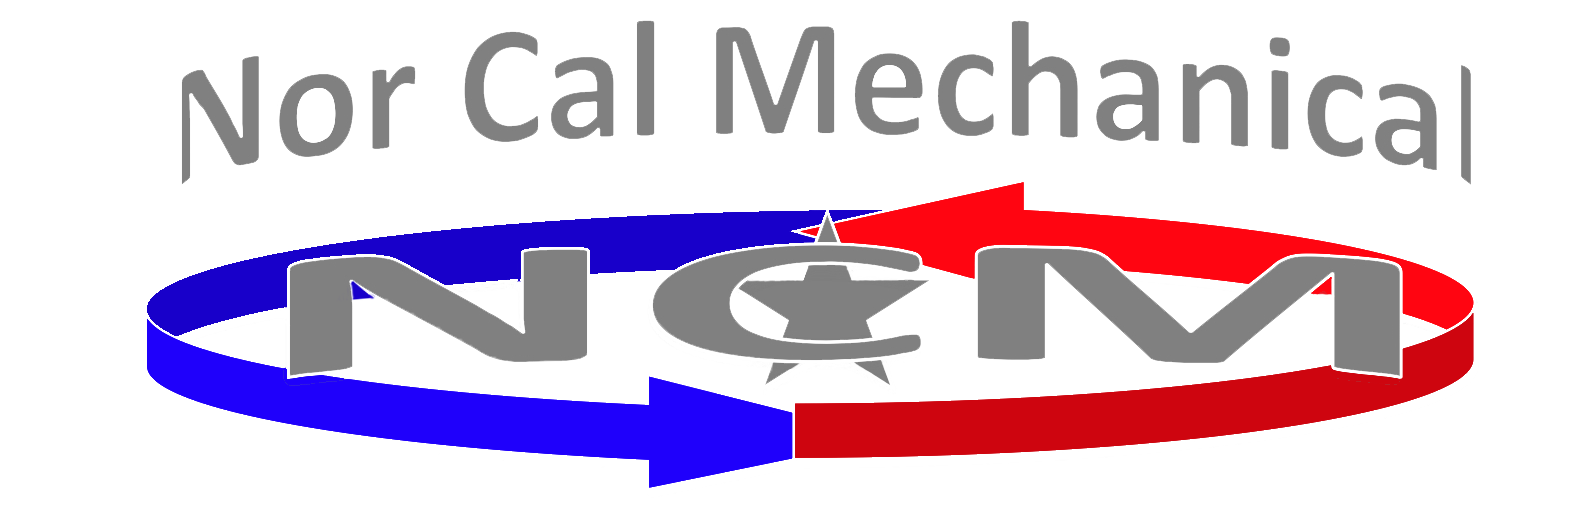 Heat clipart temperature meter. Hybrid nor cal mechanical